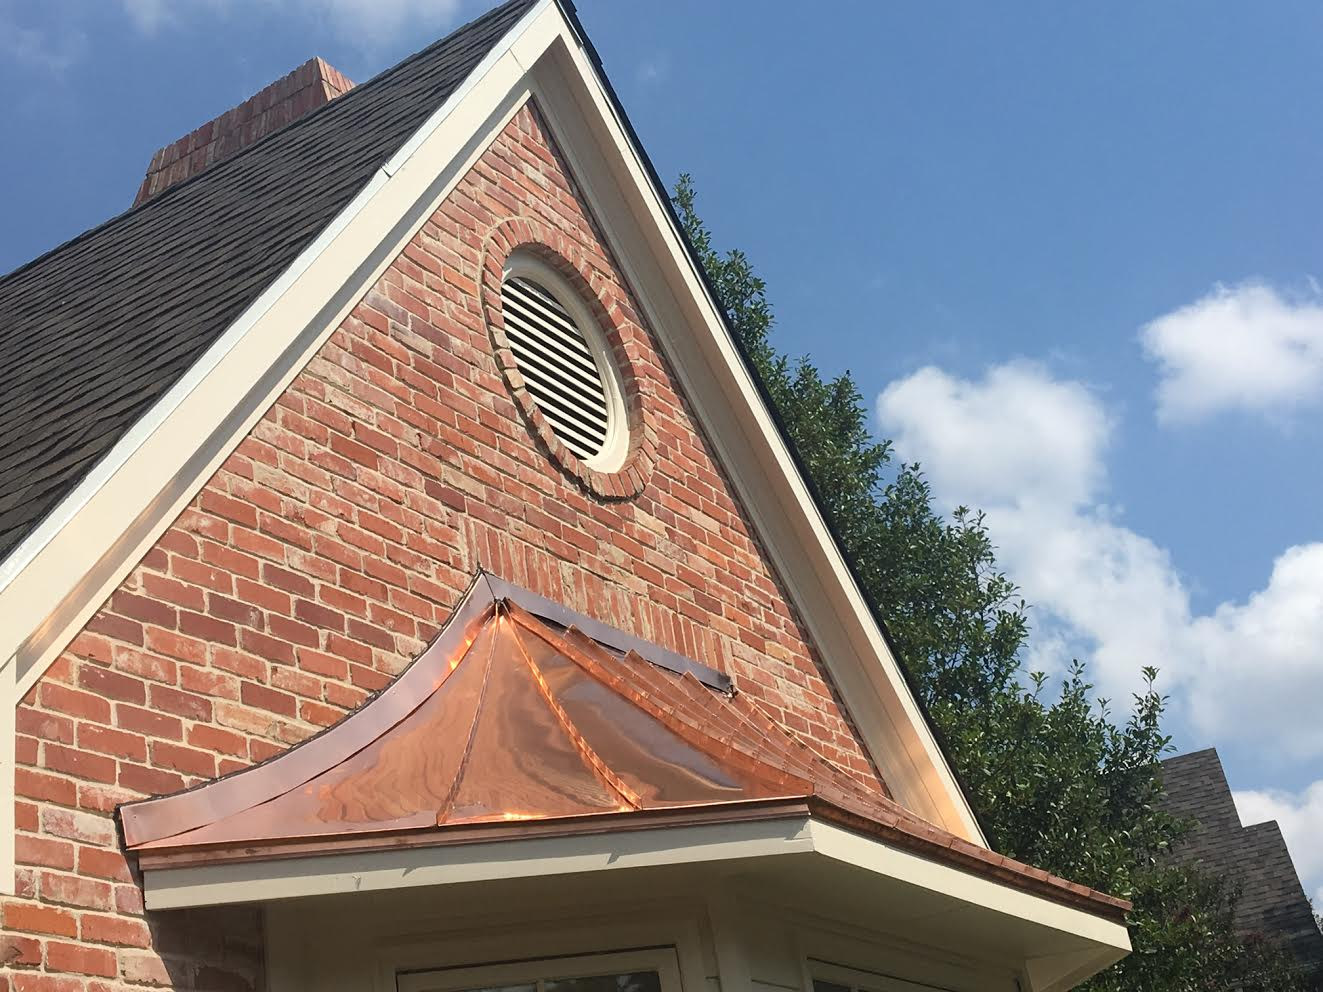 irongeate-roofing-north-texas-dallas-roofers-rockwall